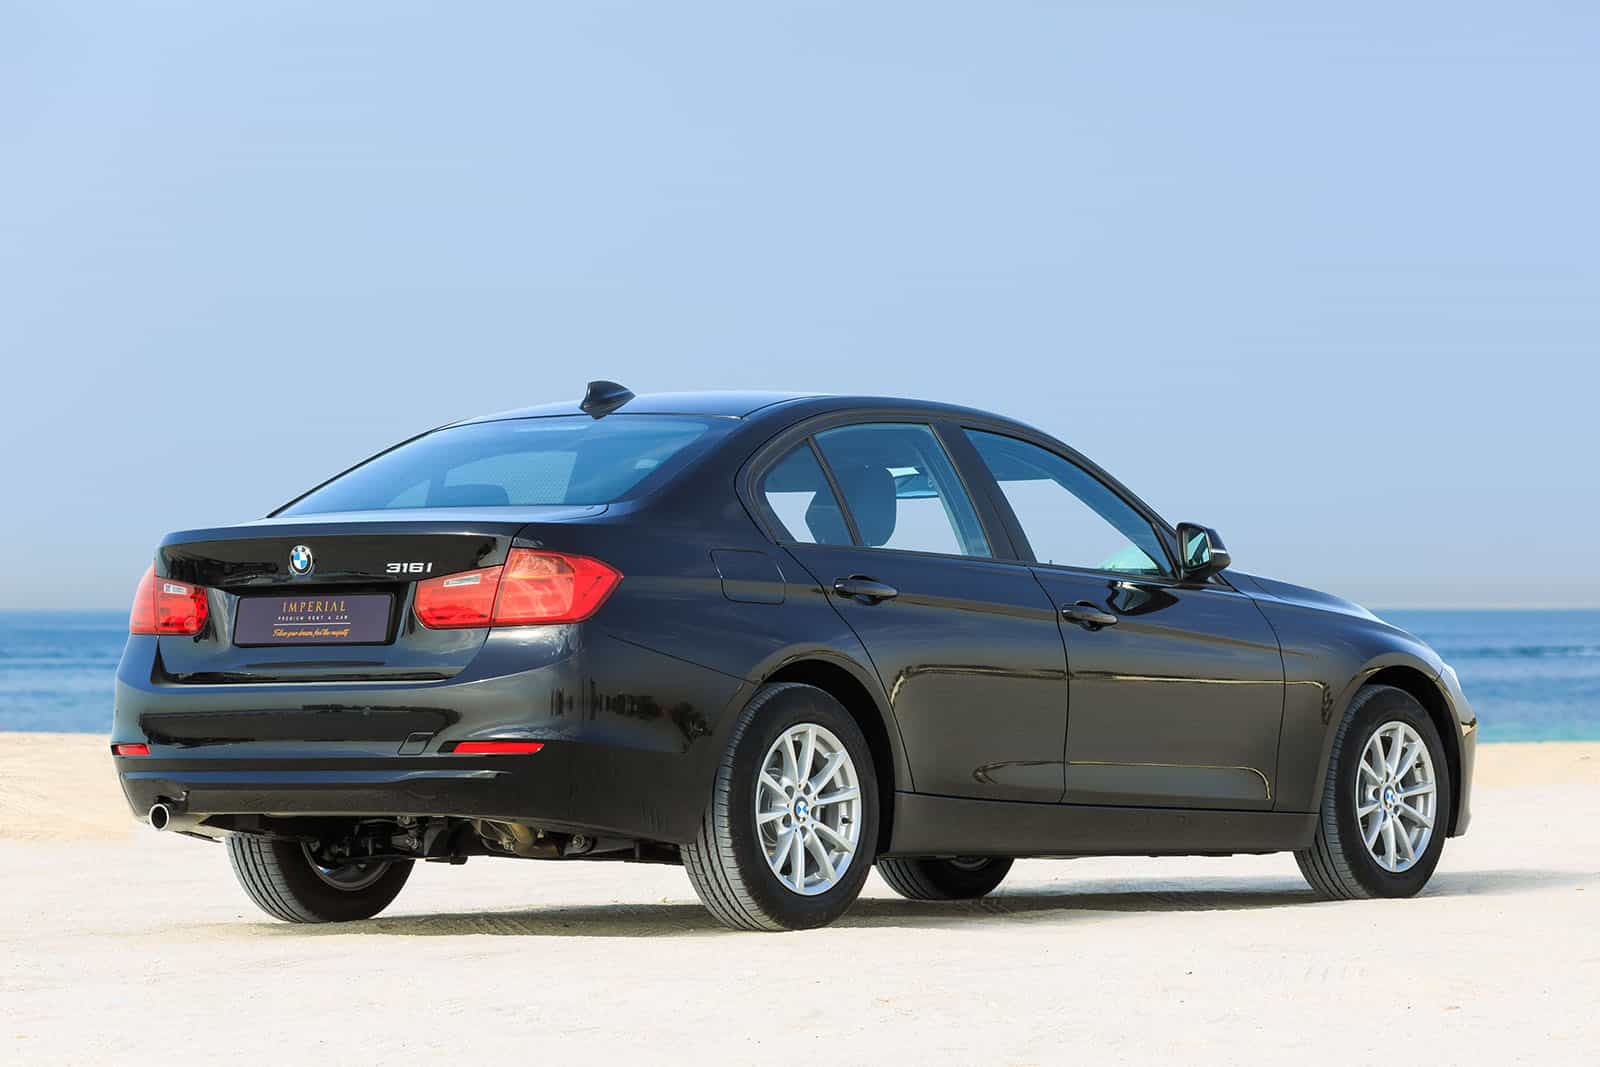 bmw 316i for rent dubai imperial premium rent a car. Black Bedroom Furniture Sets. Home Design Ideas